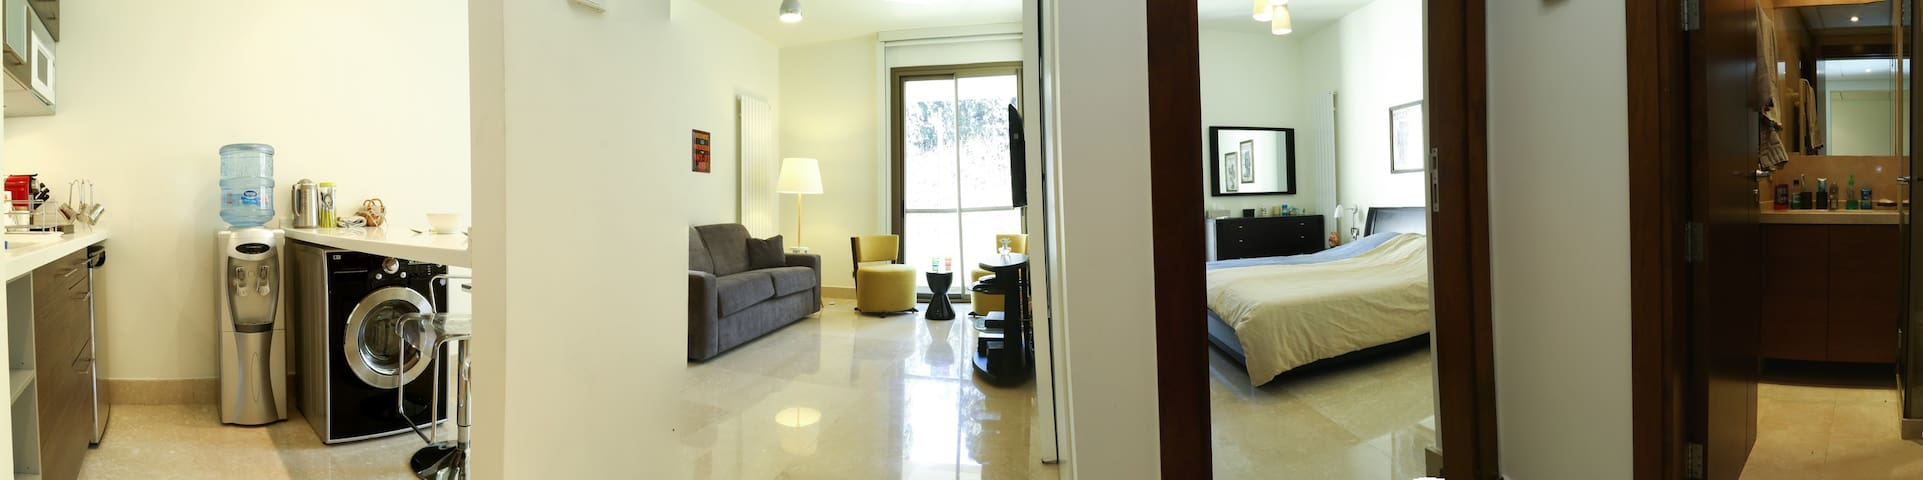 Charming Small 1BR Apt - Downtown Beirut, FREE GYM